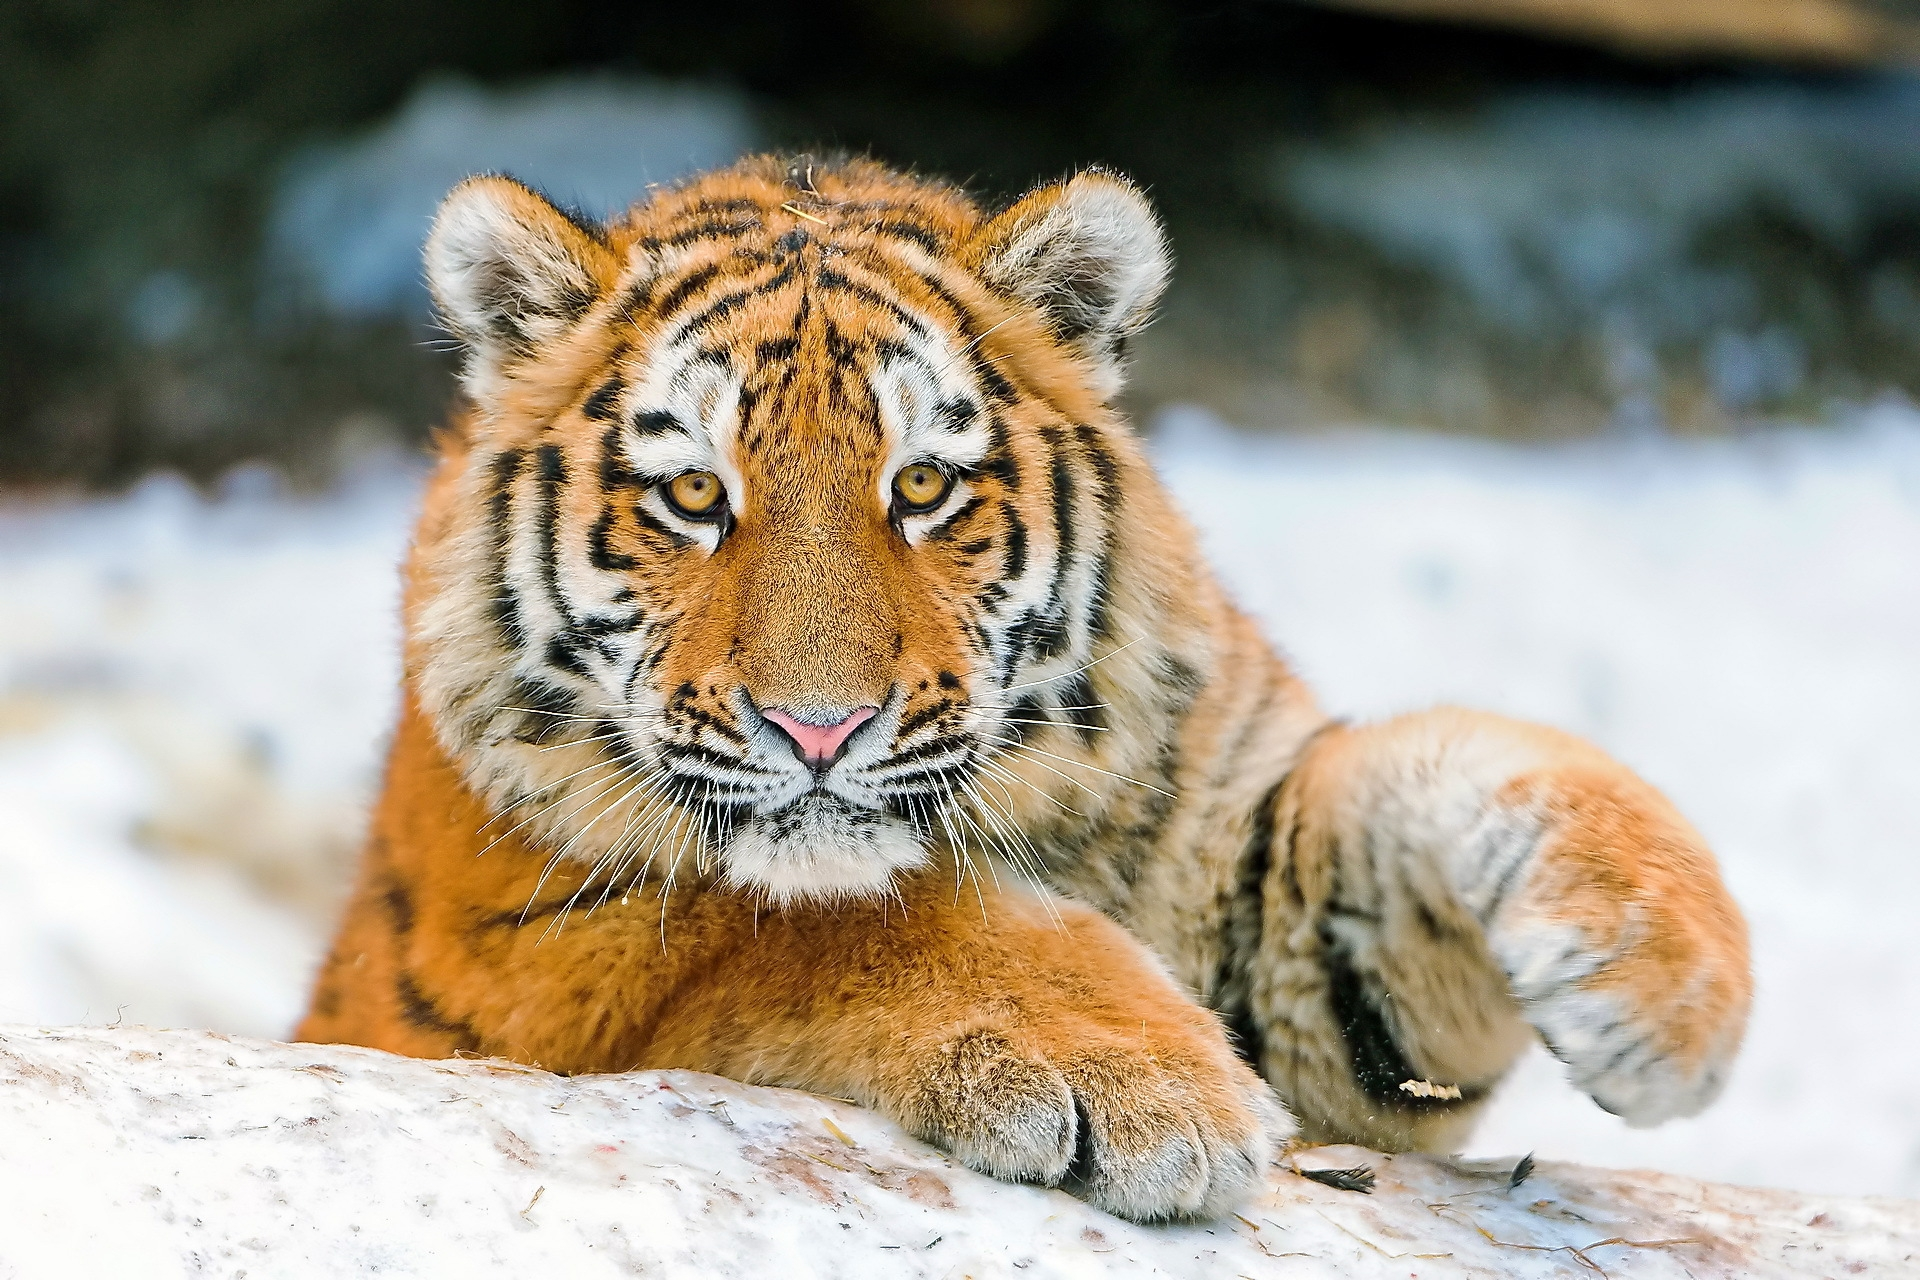 109647 download wallpaper Animals, Tiger, Young, Joey, Muzzle, Paw screensavers and pictures for free